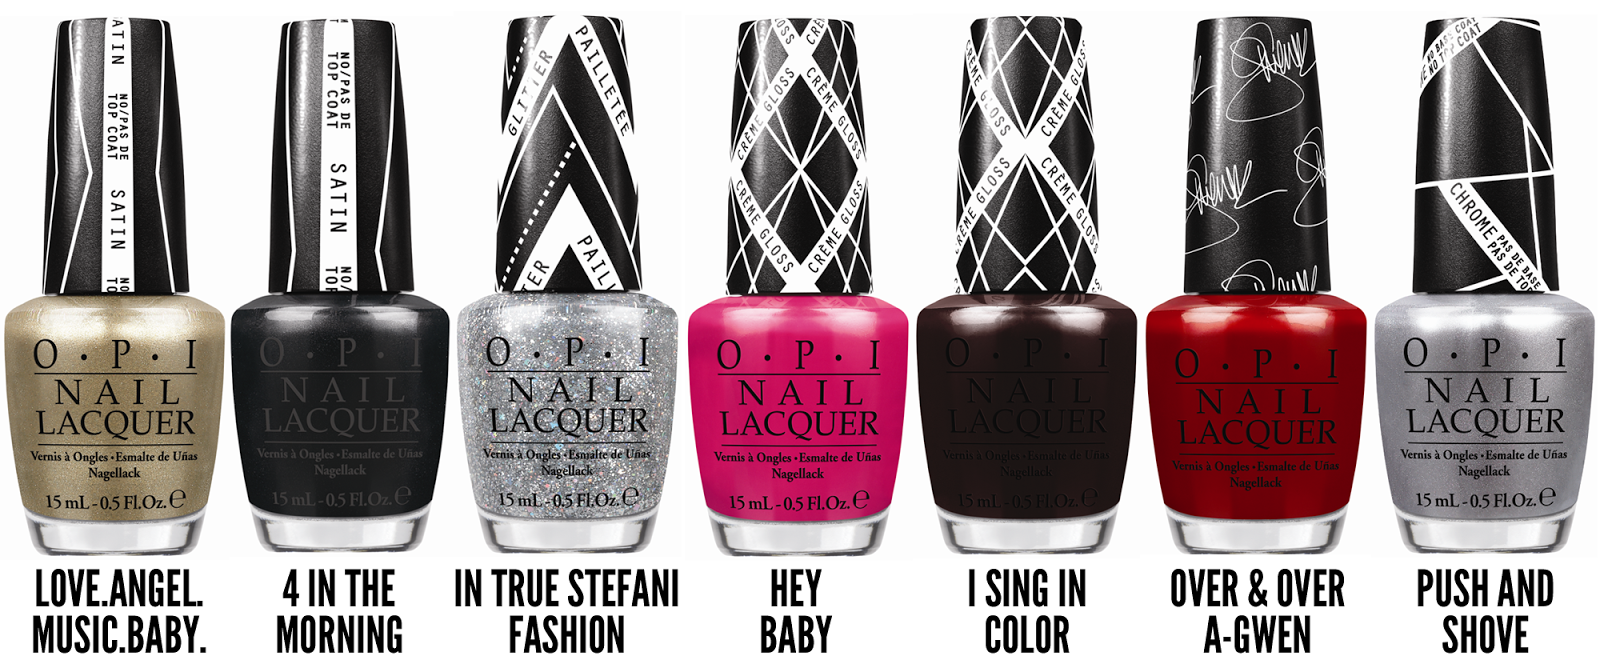 Gwen Stefani for OPI Nail Polish Collection 2013 recommendations